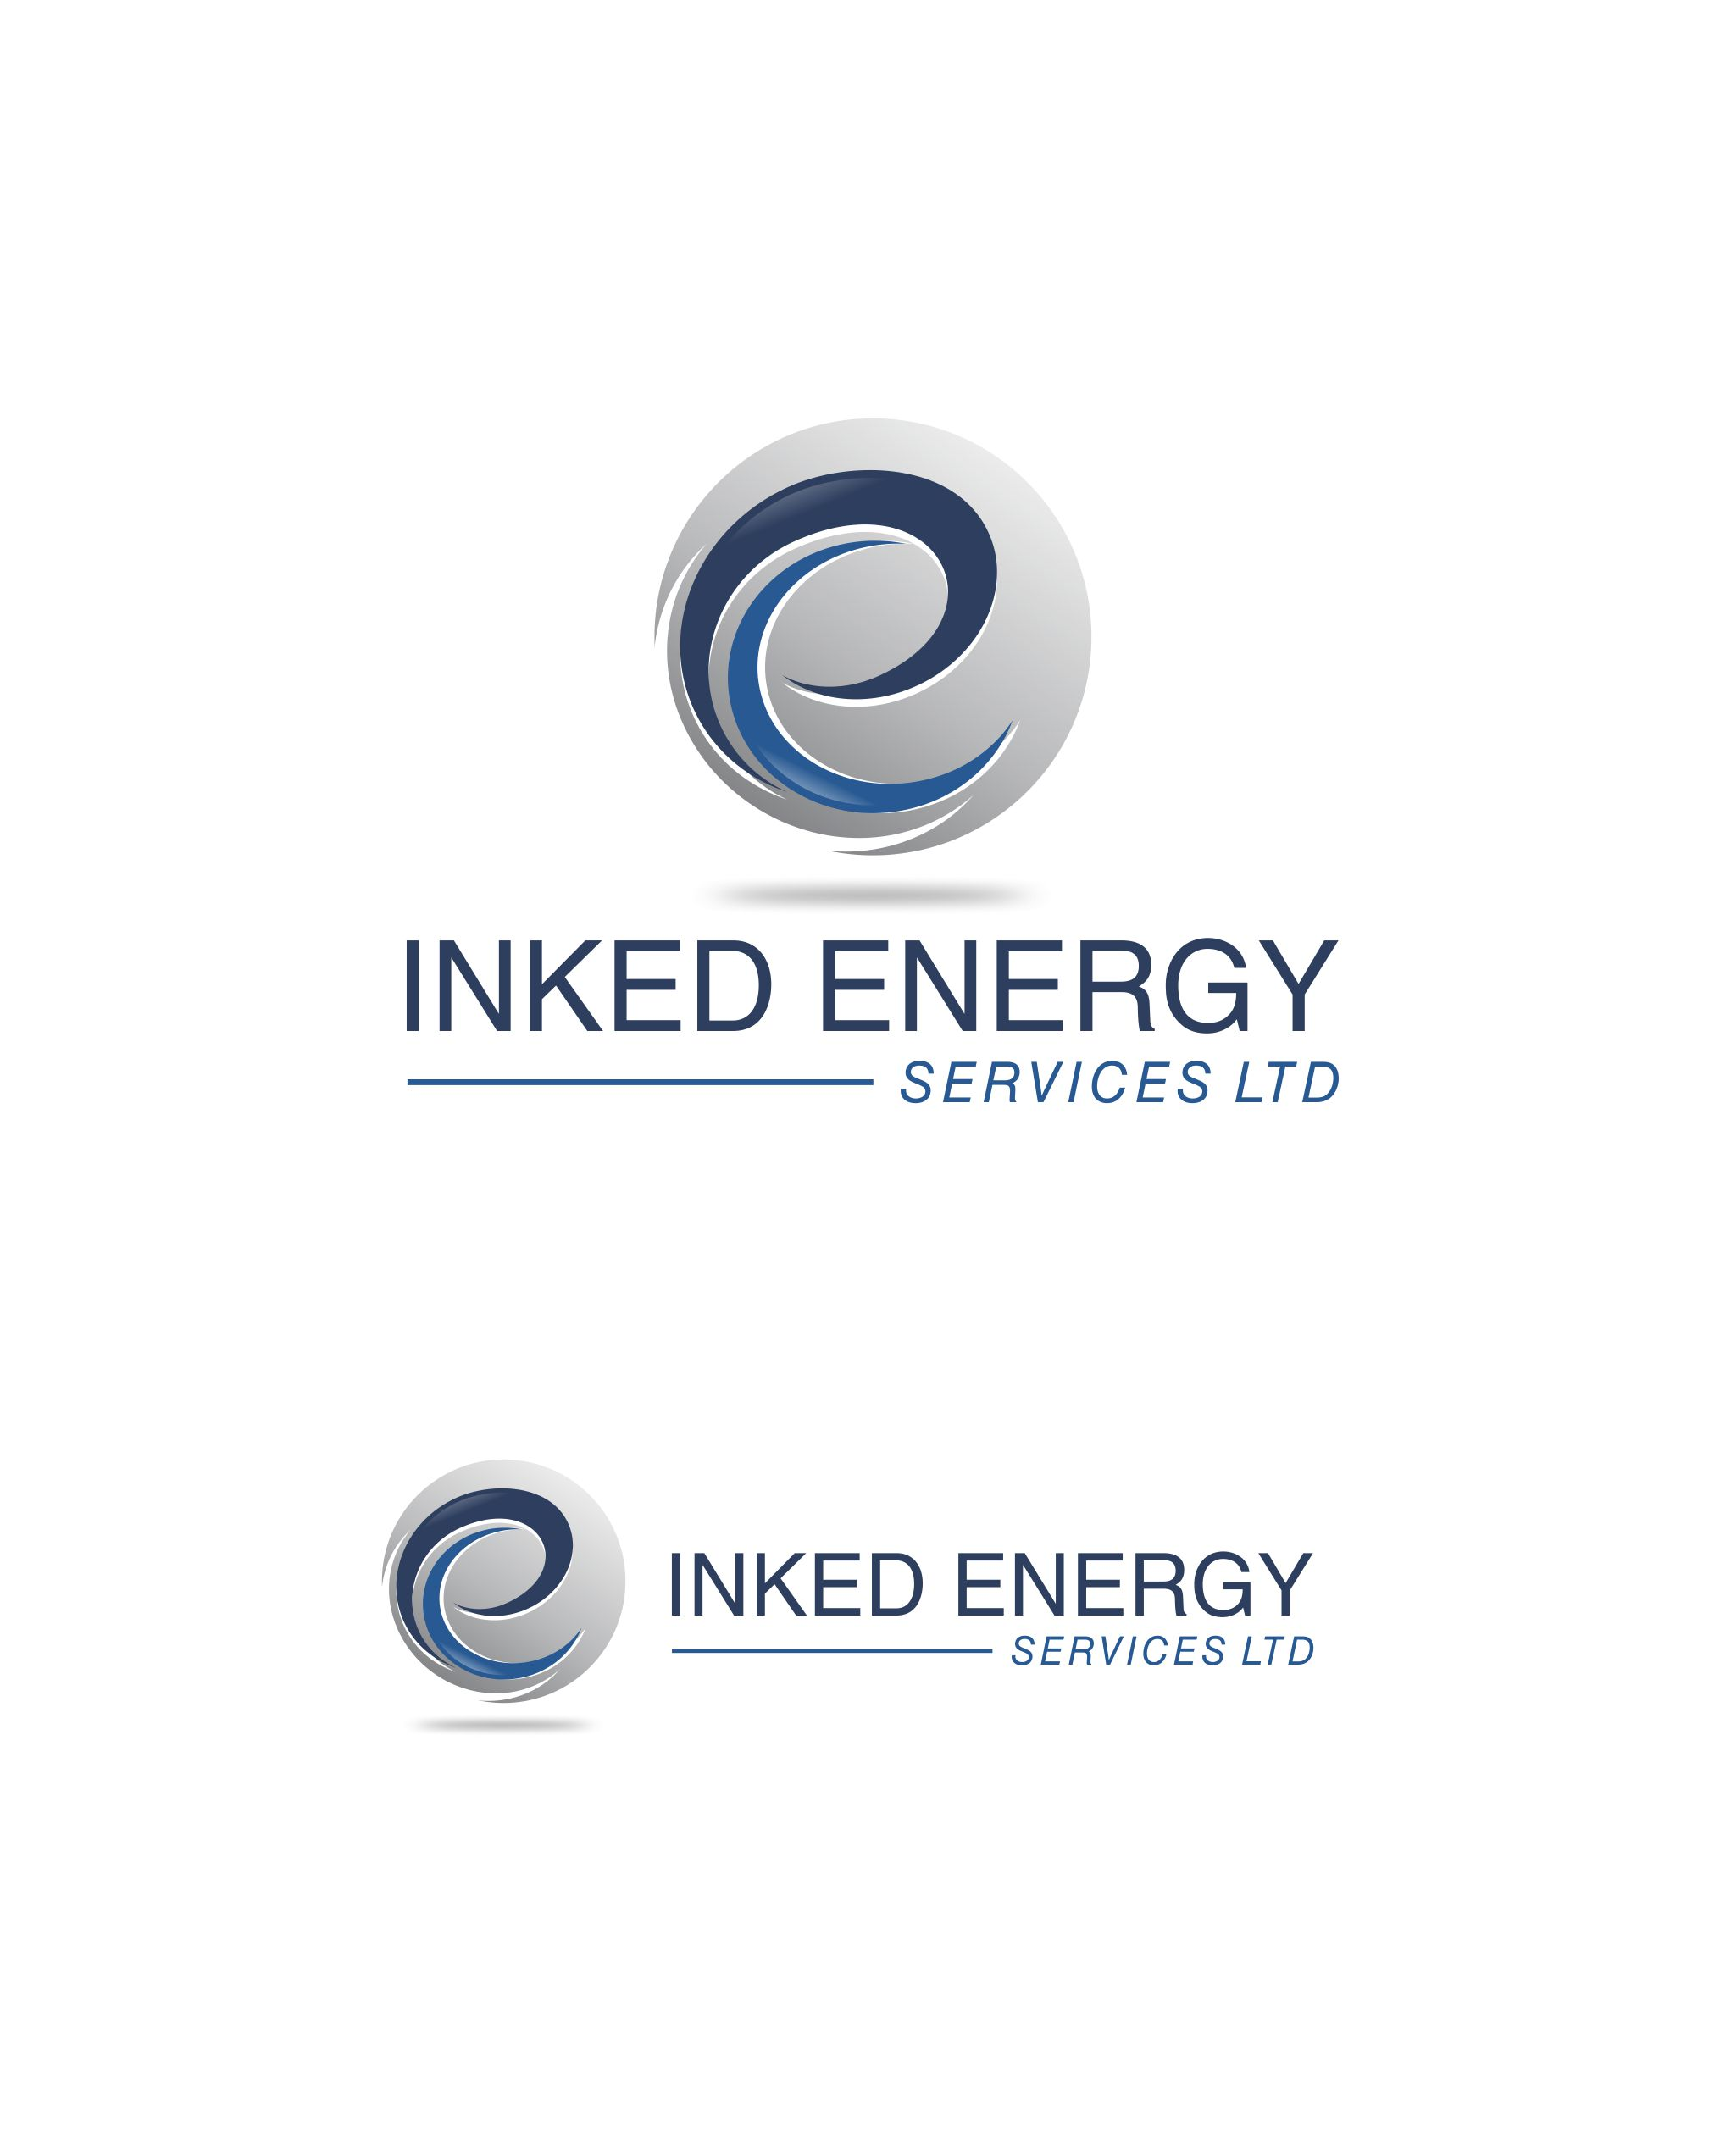 Logo Design by Raymond Garcia - Entry No. 6 in the Logo Design Contest Creative Logo Design for INKED ENERGY SERVICES LTD.